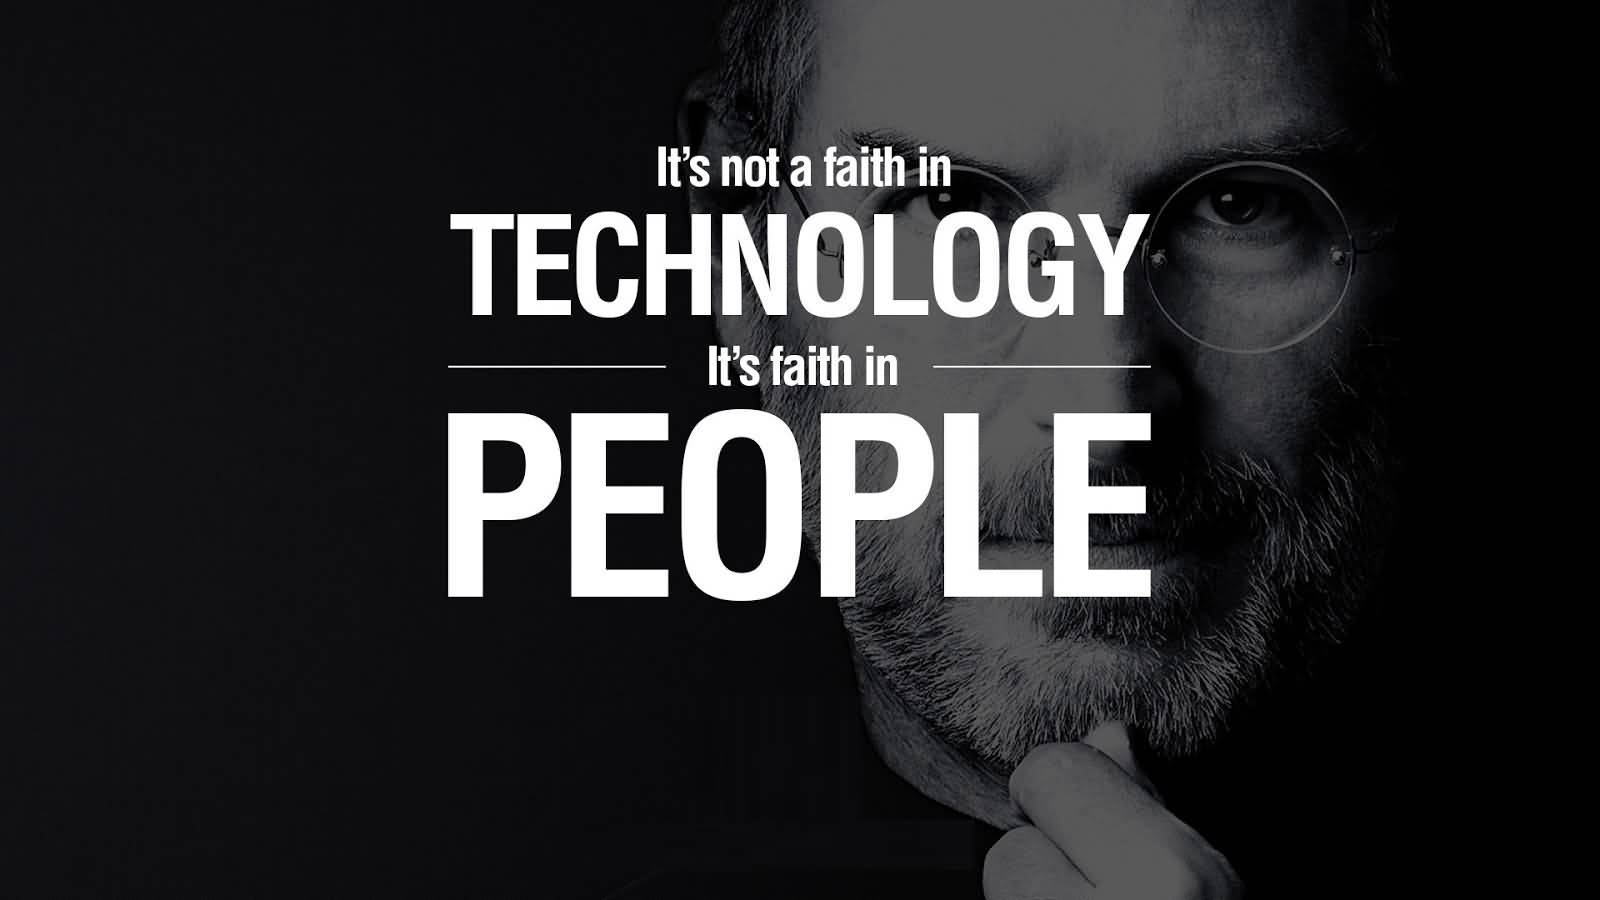 Quotes On Technology Entrancing Top 20 Technology Quotes Tech Quotes Best Technology Status